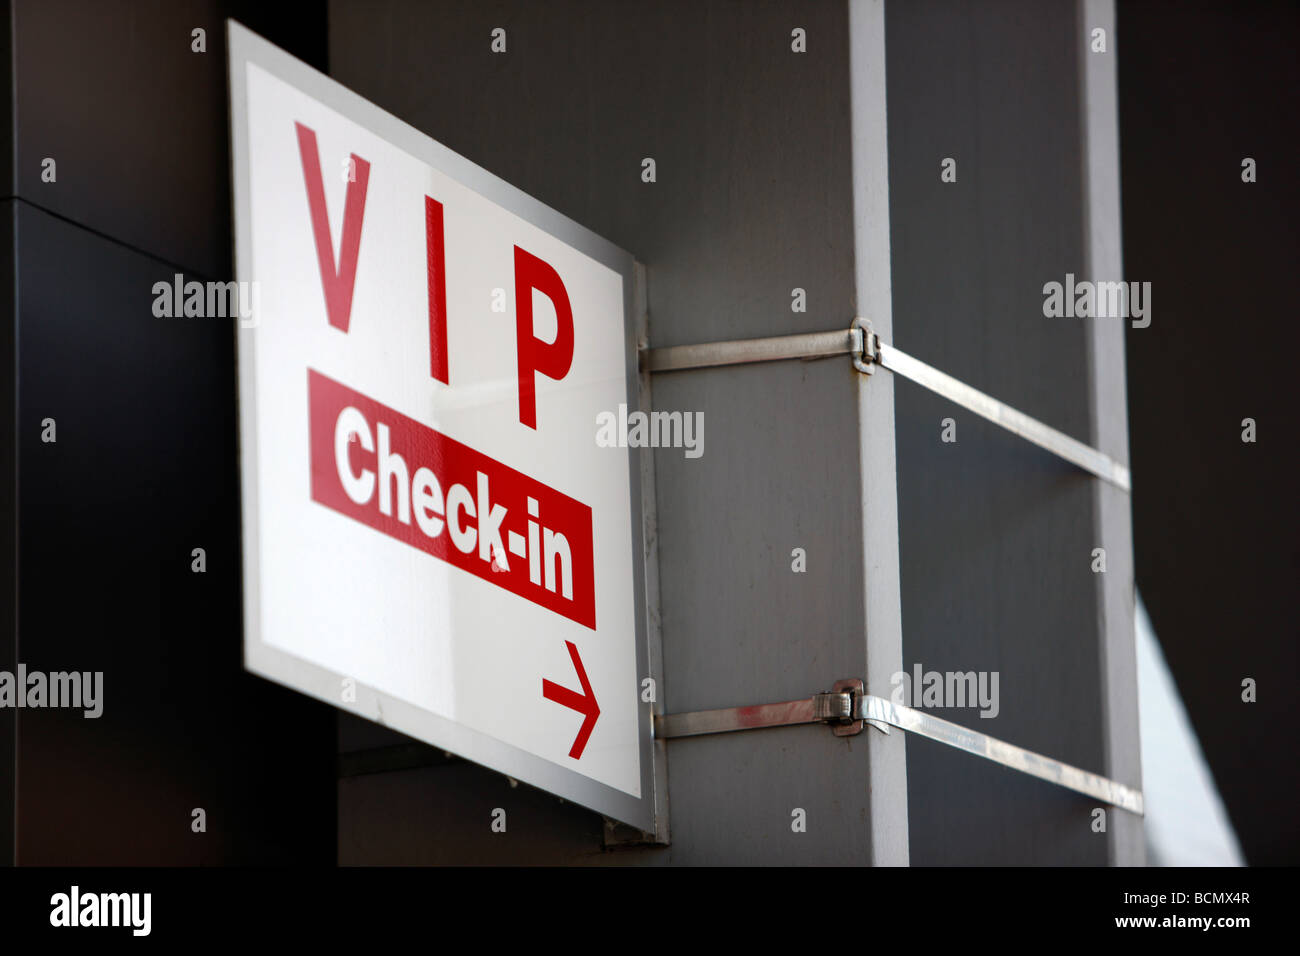 VIP check-in, Esprit Arena, formerly LTU Arena, Dusseldorf, Germany - Stock Image